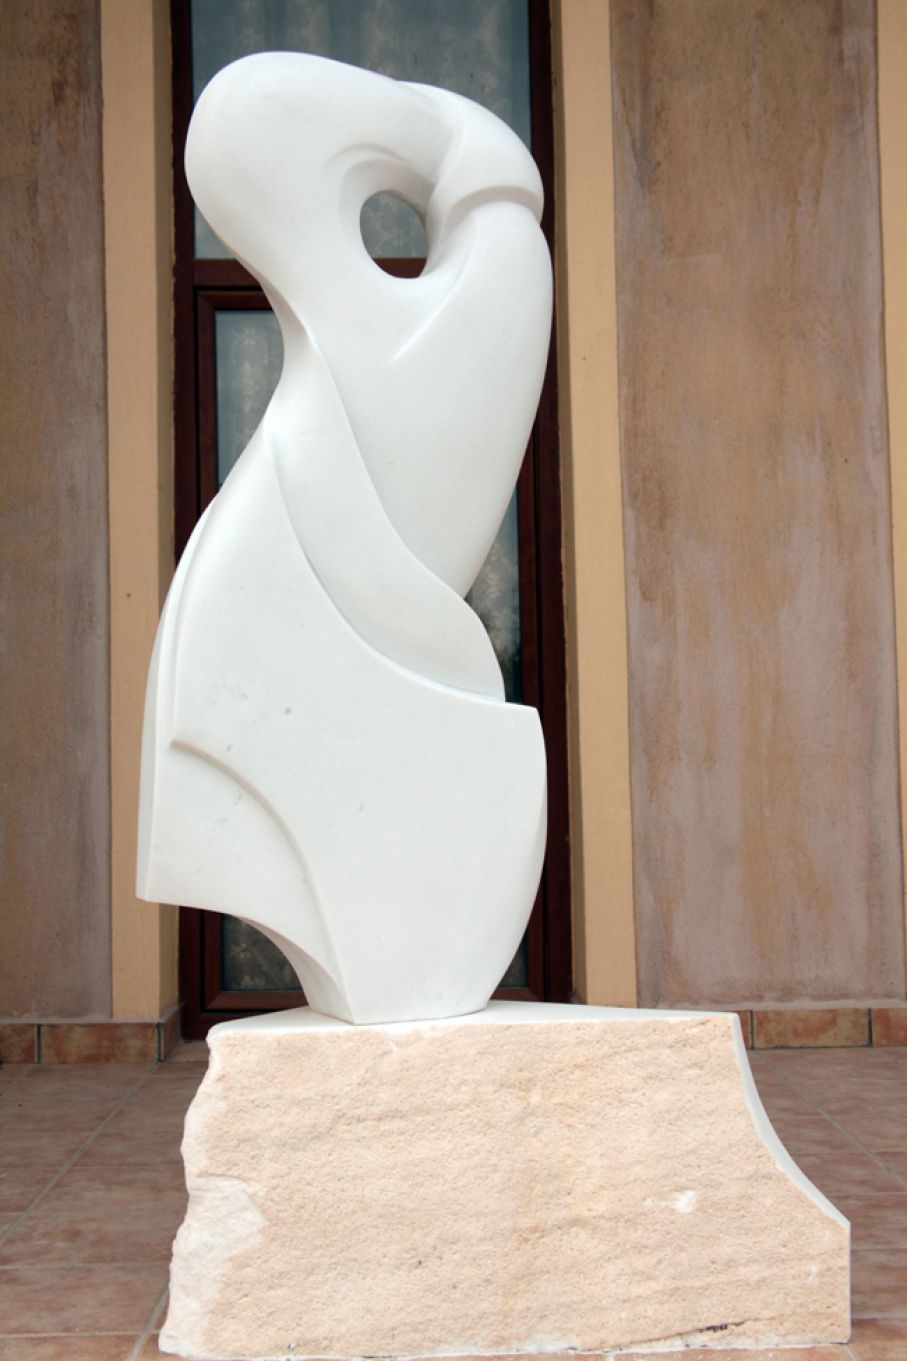 "Original marble sculpture of Thanos Karonis, completed on August 2013, within Myrό Antiques House premises, in Souroti, Thessaloniki, GREECE, as part of the Greek Marble Initiative, bearing the title ""Theorem"". Dimensions: 135 X 60 X 22 cm (without its base)."